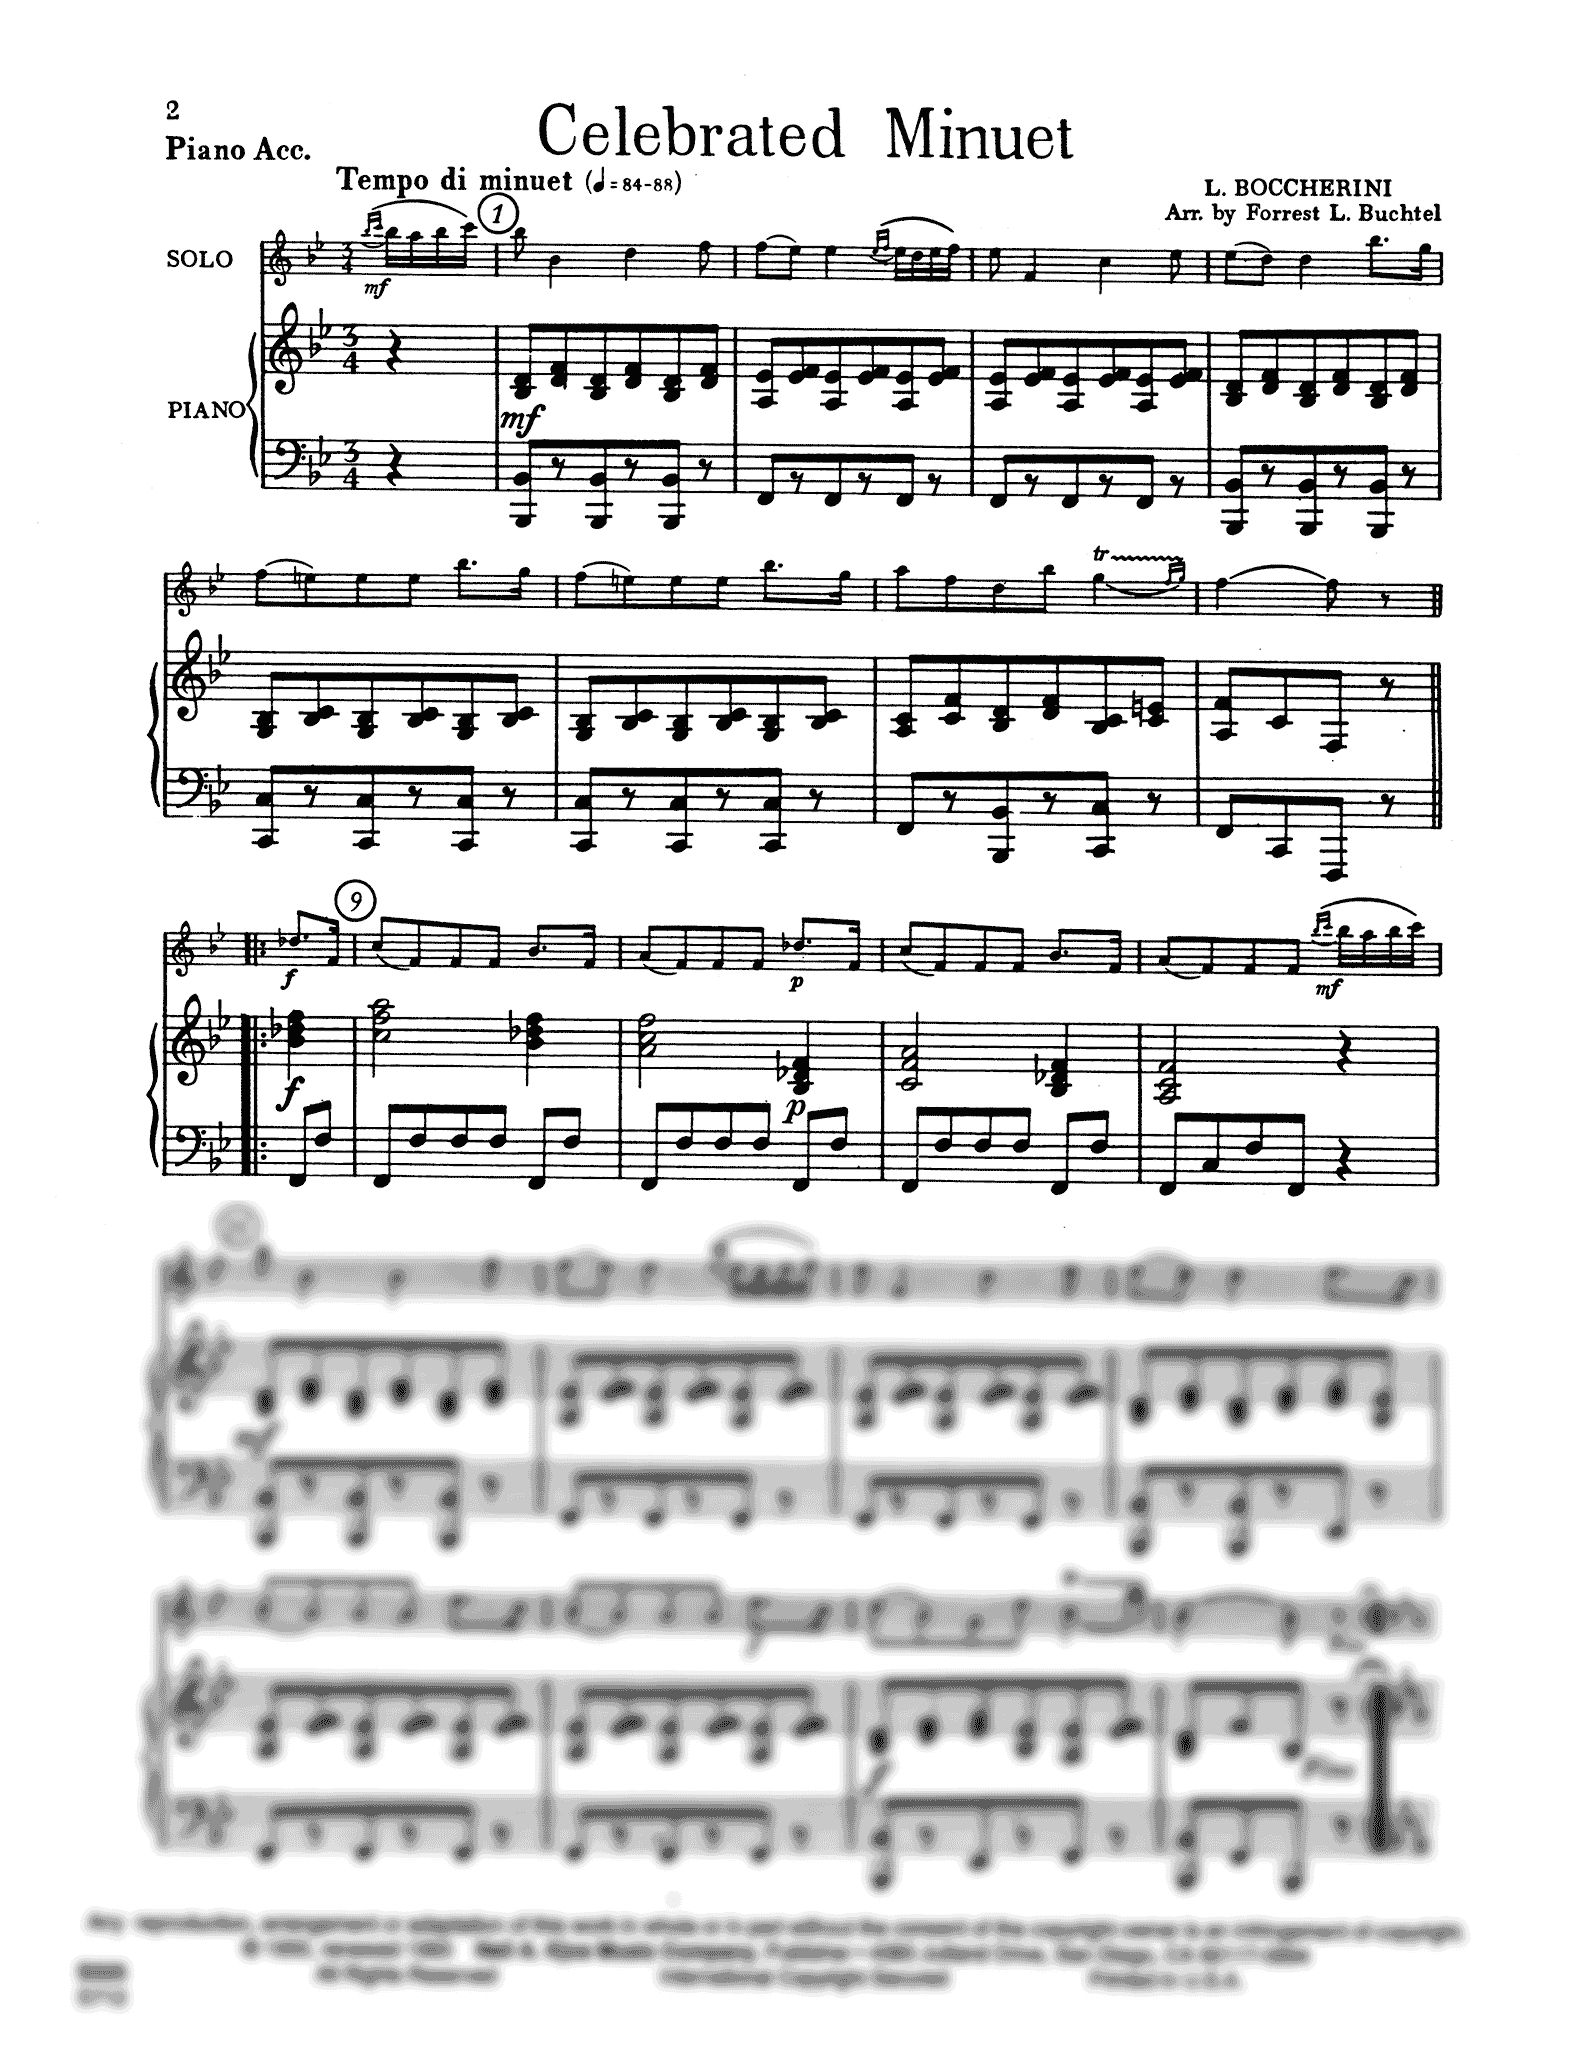 Celebrated Minuet, from String Quintet in E Major, Op. 11 No. 5 Score